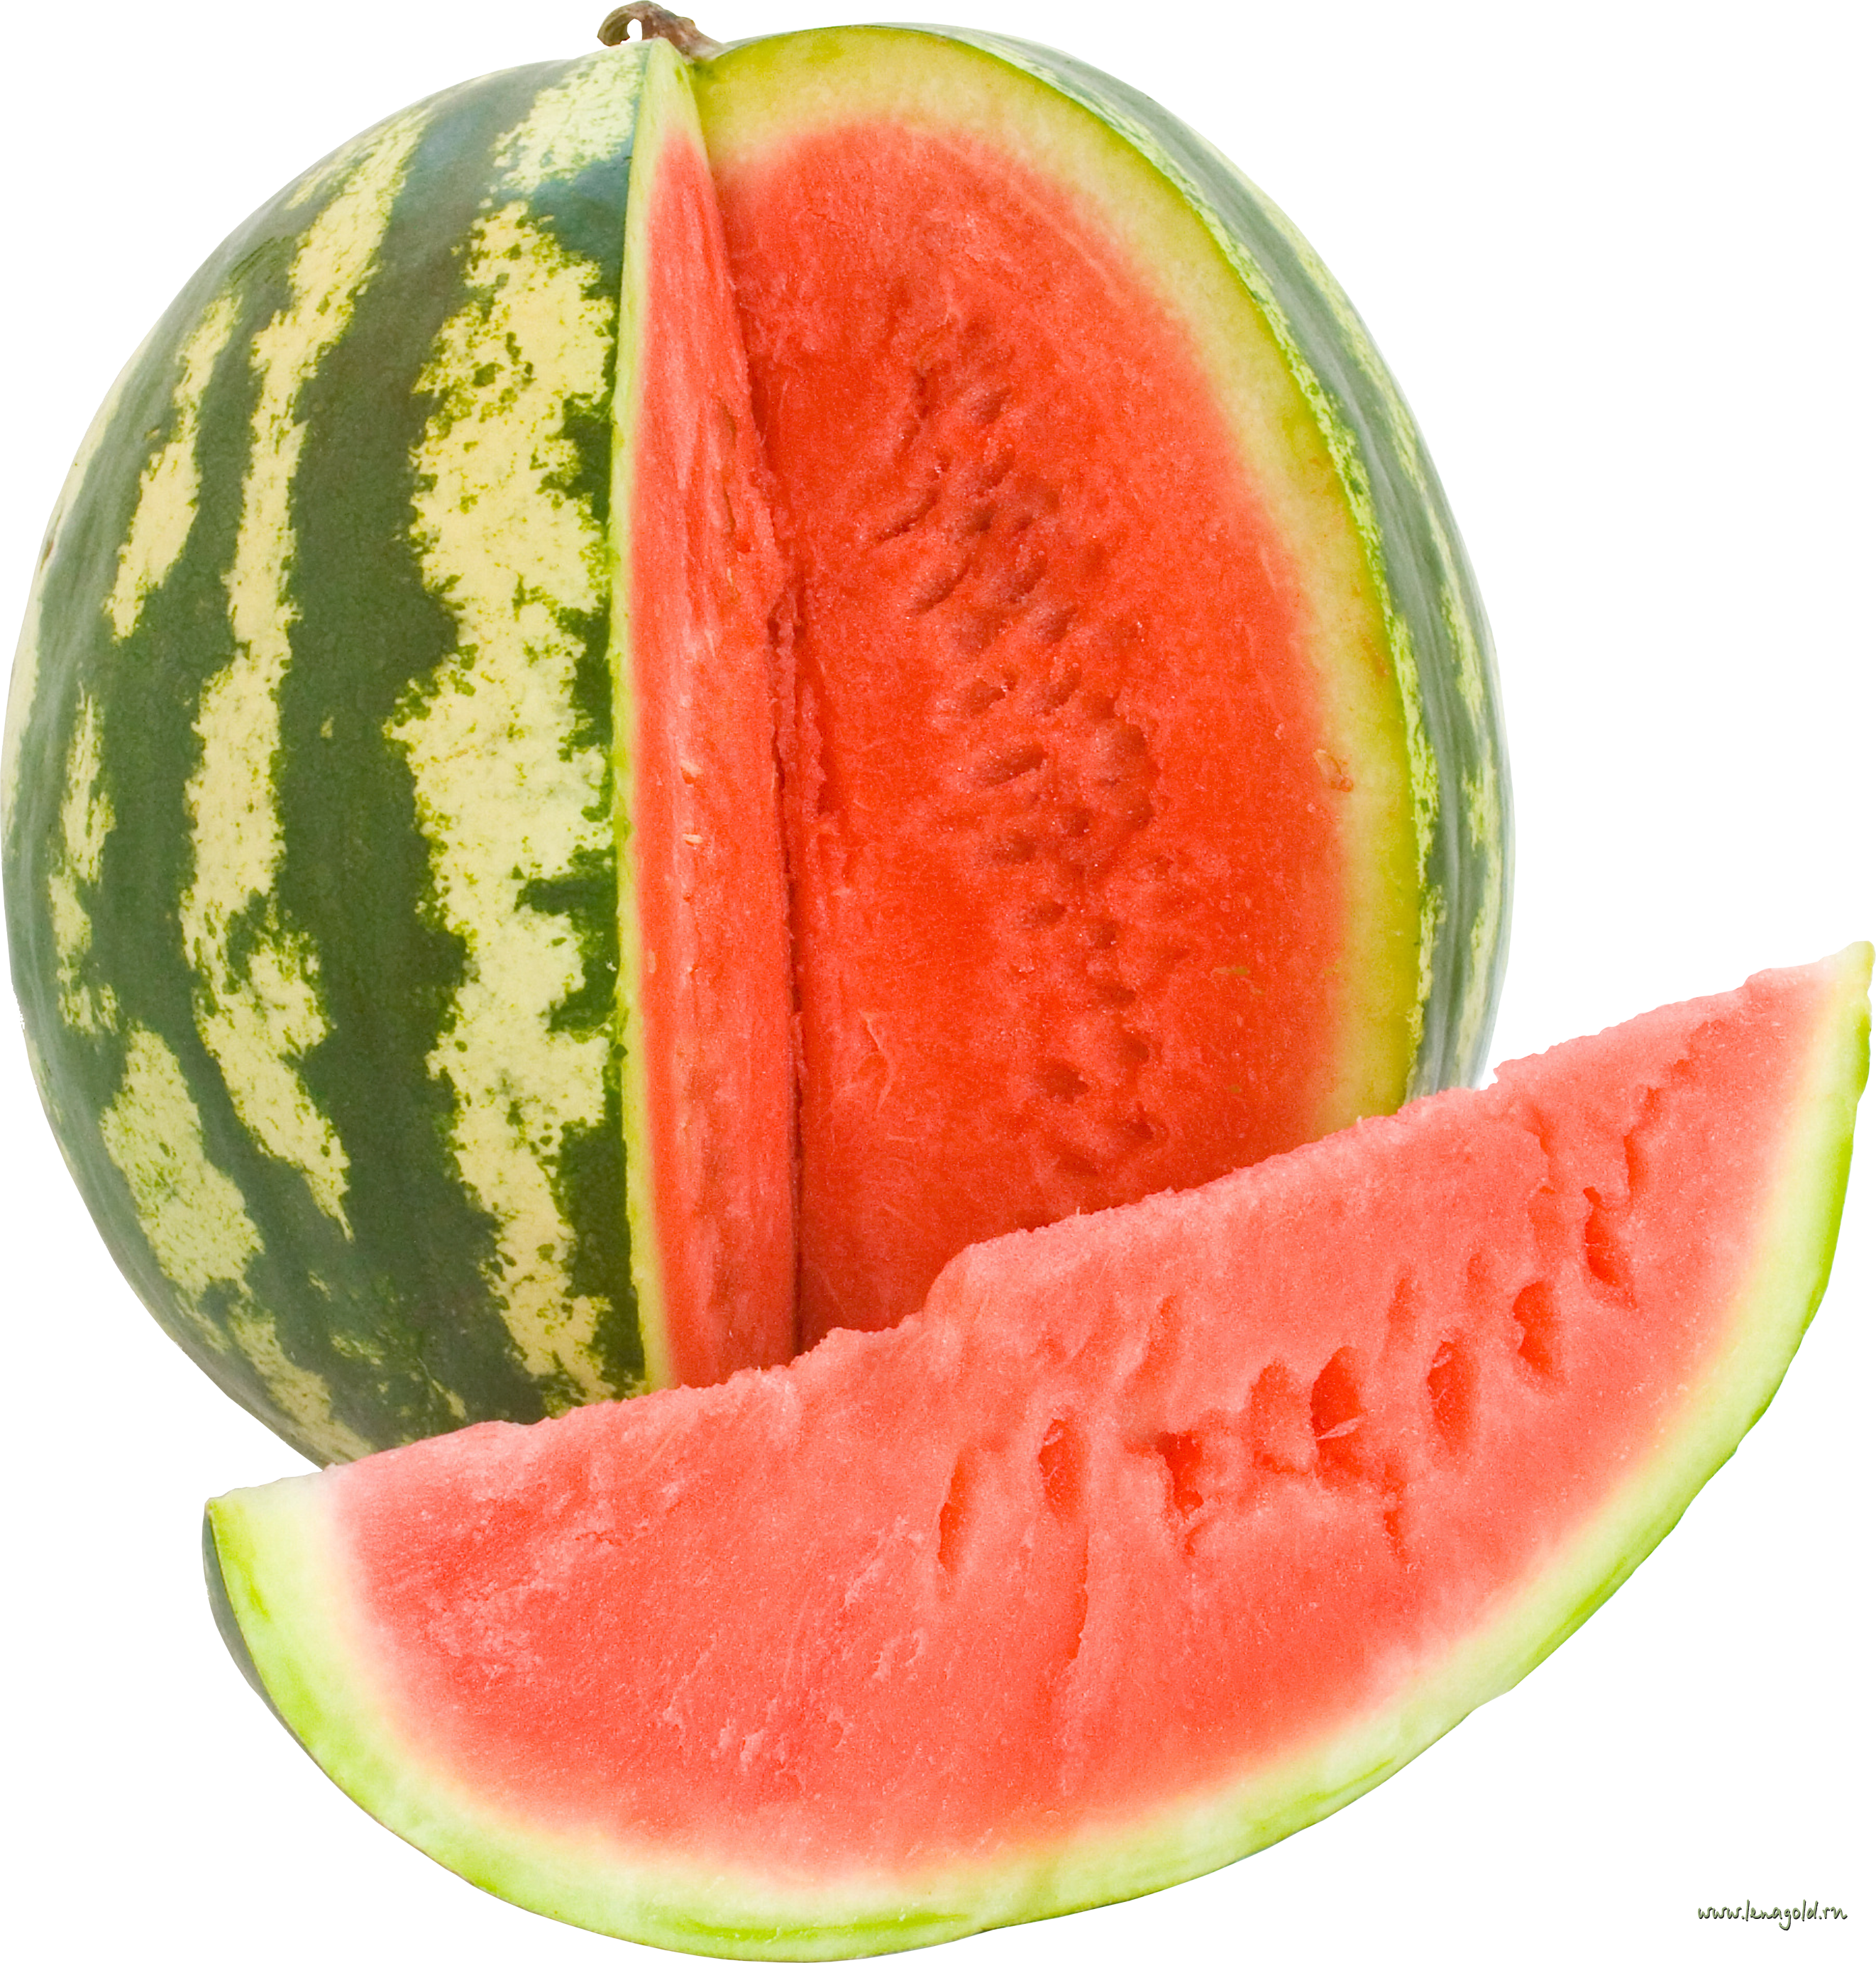 watermelon PNG image - Watermelon PNG - Melon HD PNG